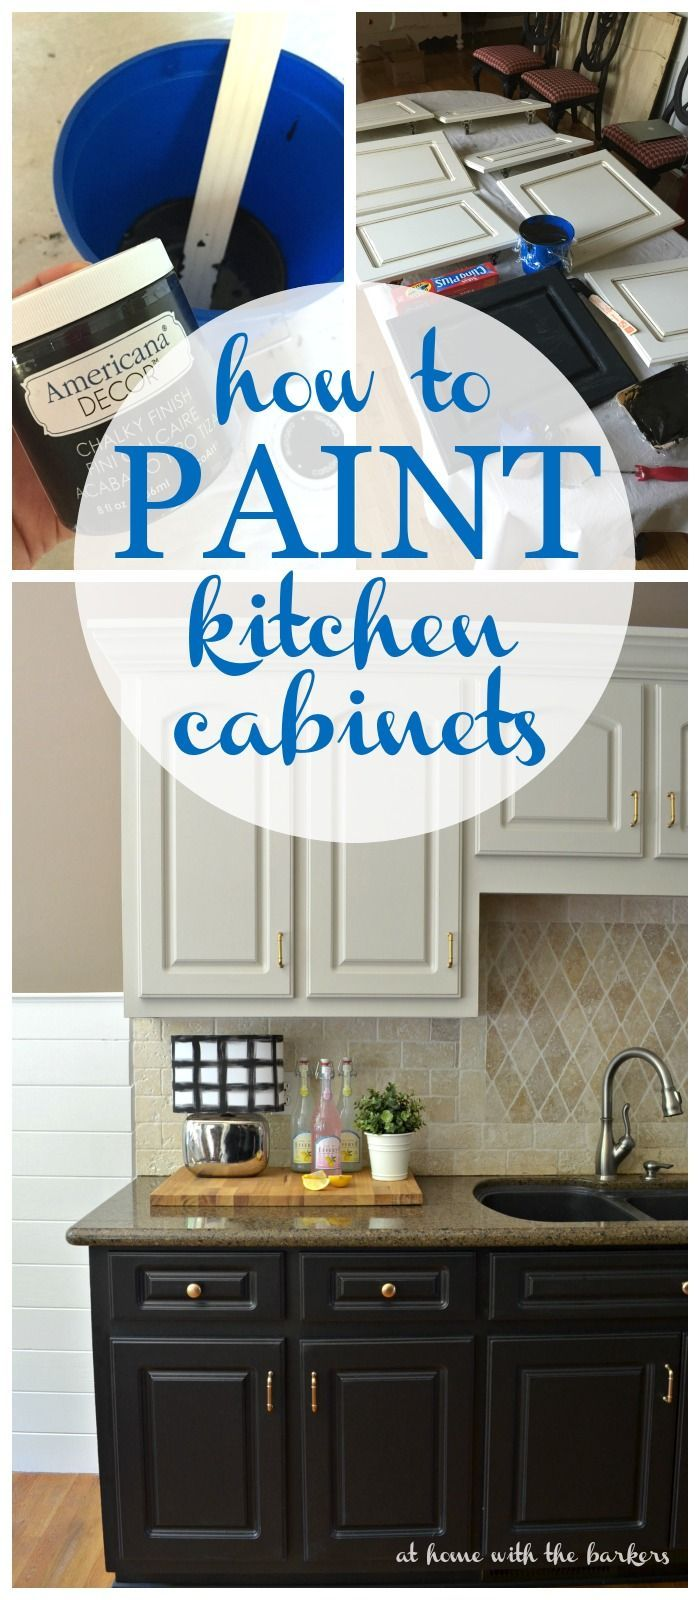 How to Paint Kitchen Cabinets with Chalky Finish Paint via Athomewiththebarkers.